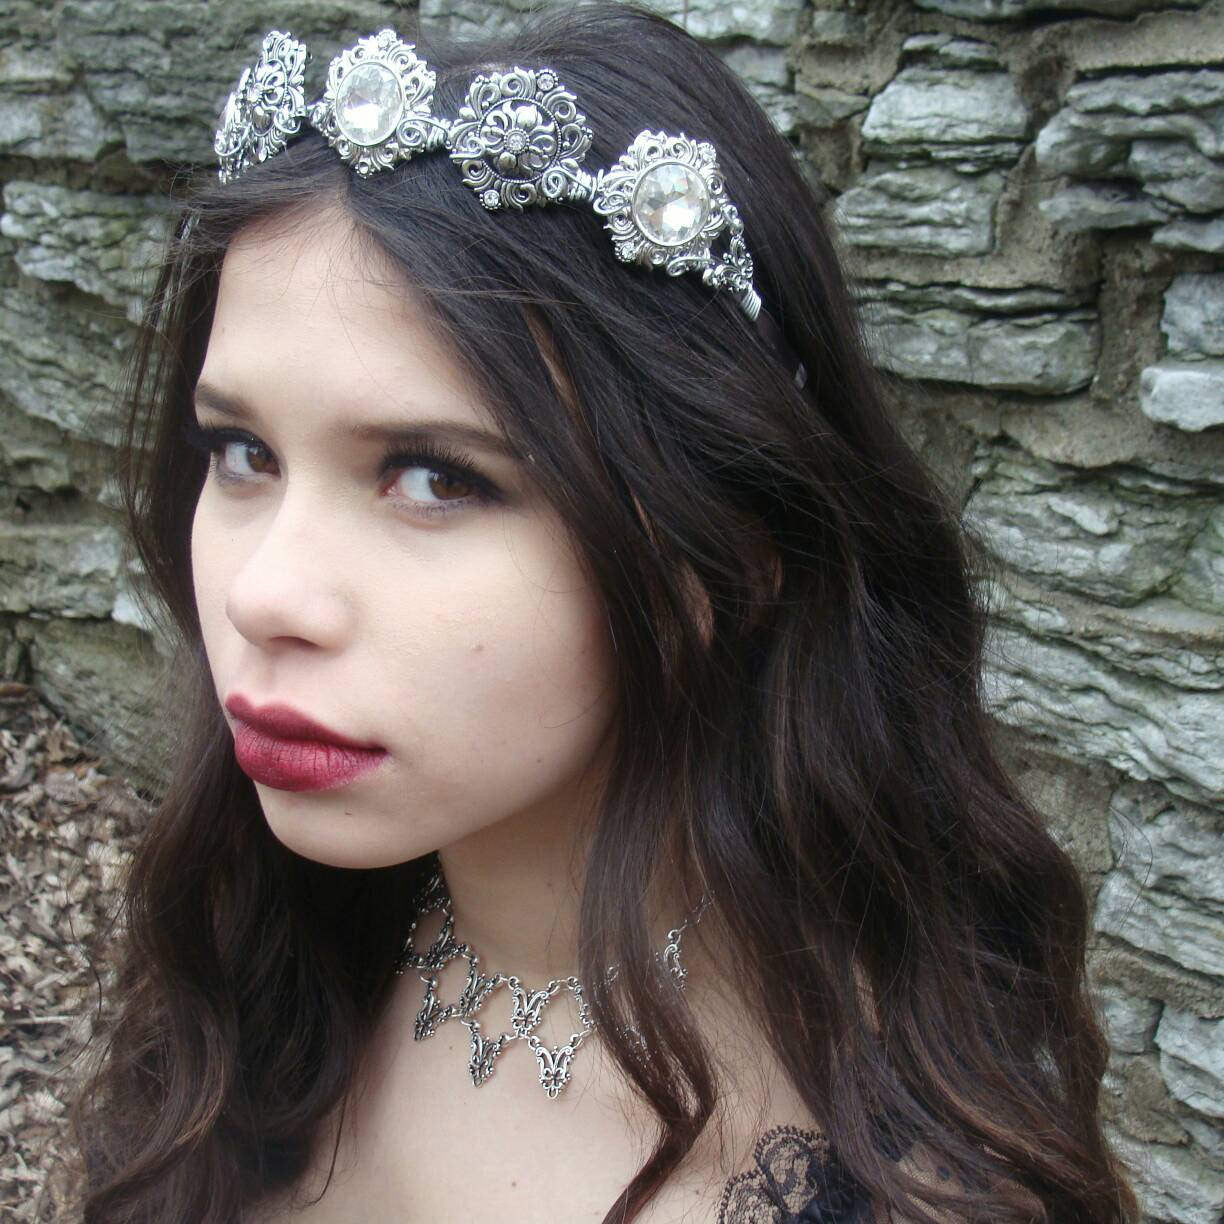 Silver Bridal Rhinestone Crown Hair Jewelry Tiara Circlet - DRAVYNMOOR